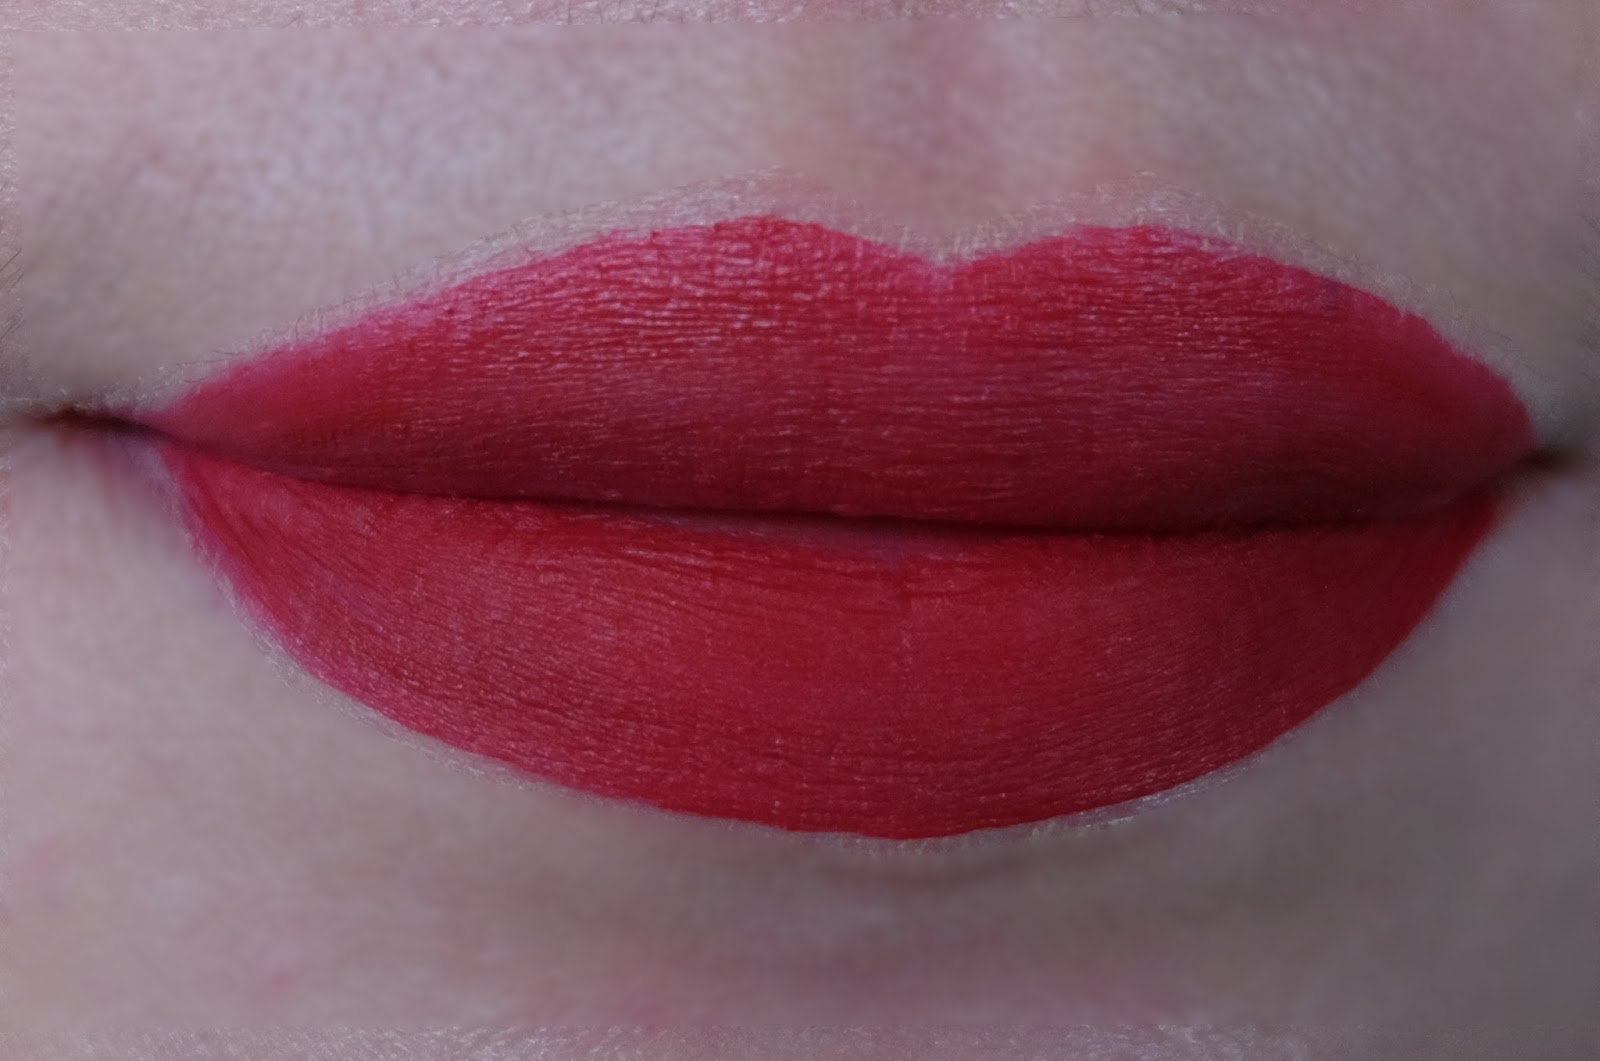 Full Swatches Wardah Exclusive Matte Lip Cream Review No 07 08